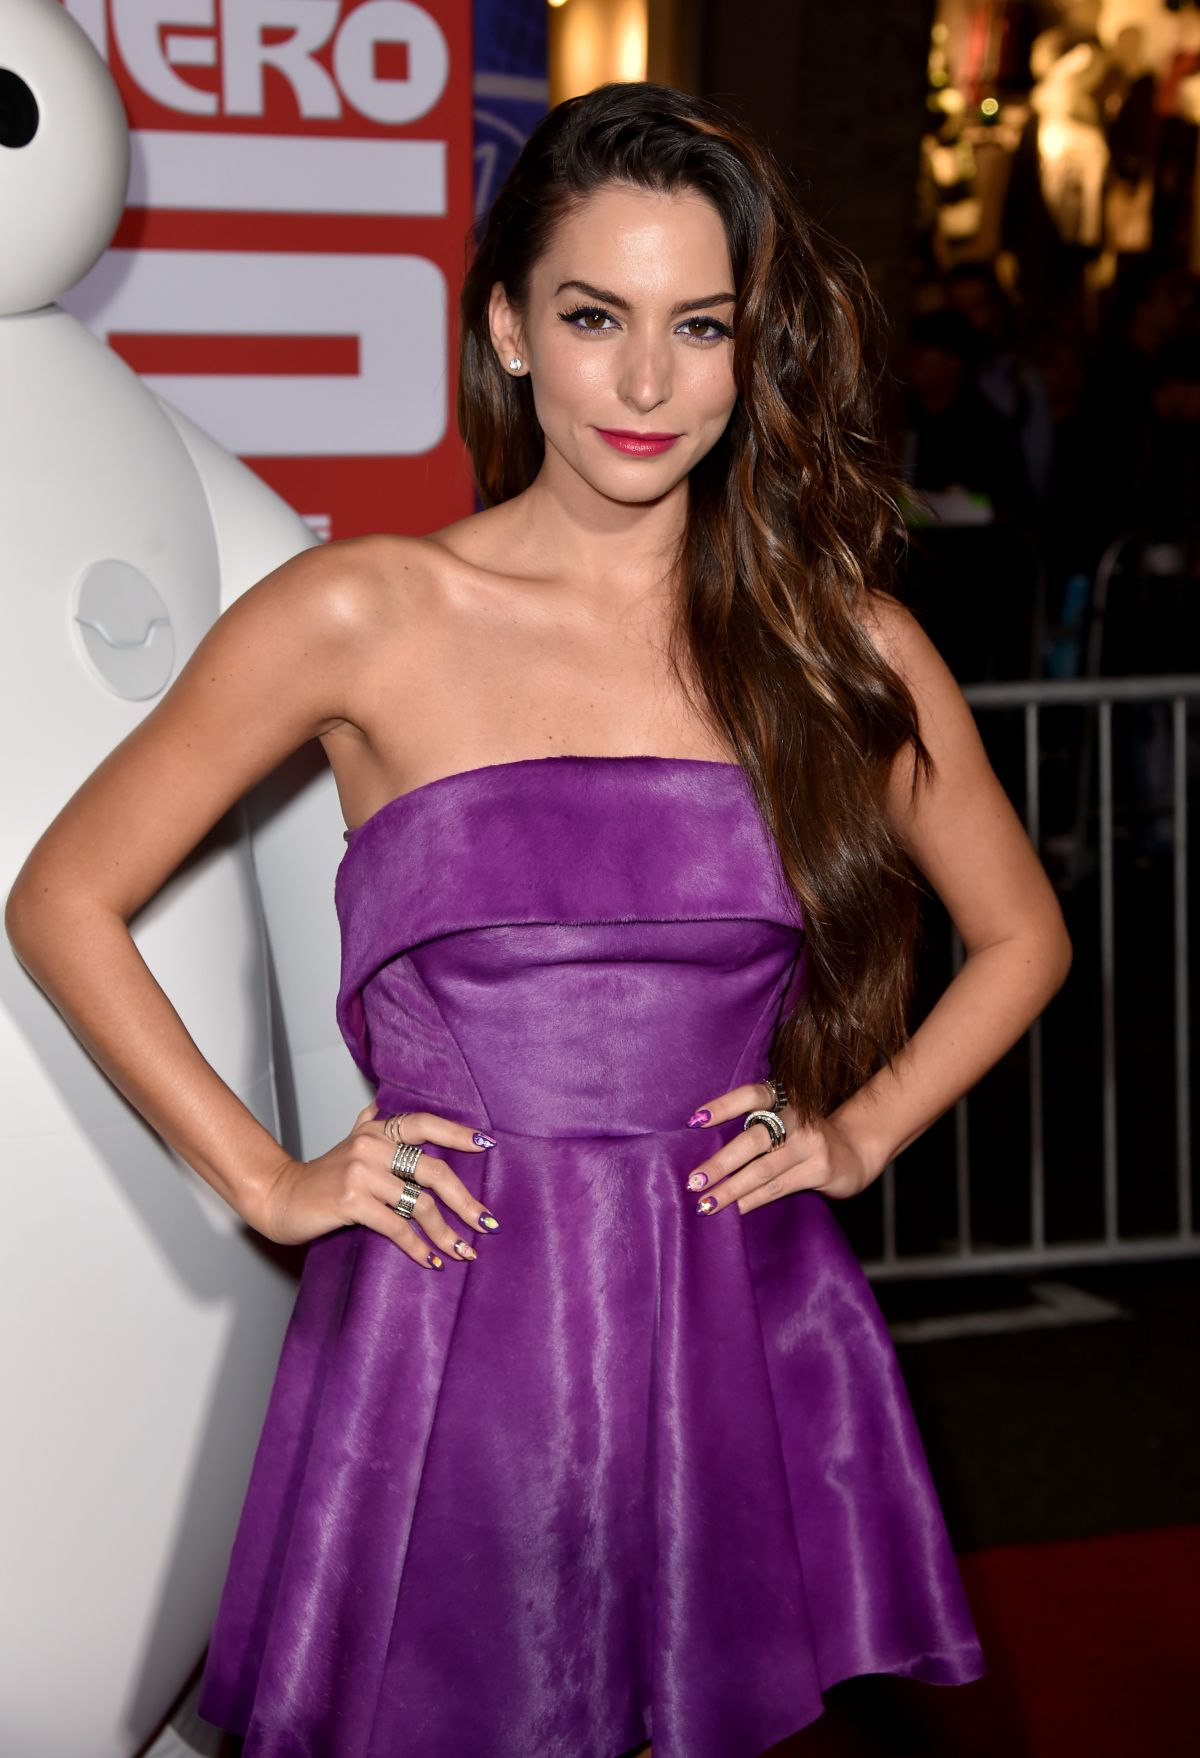 Genesis Rodriguez At Big Hero 6 Premiere In Hollywood